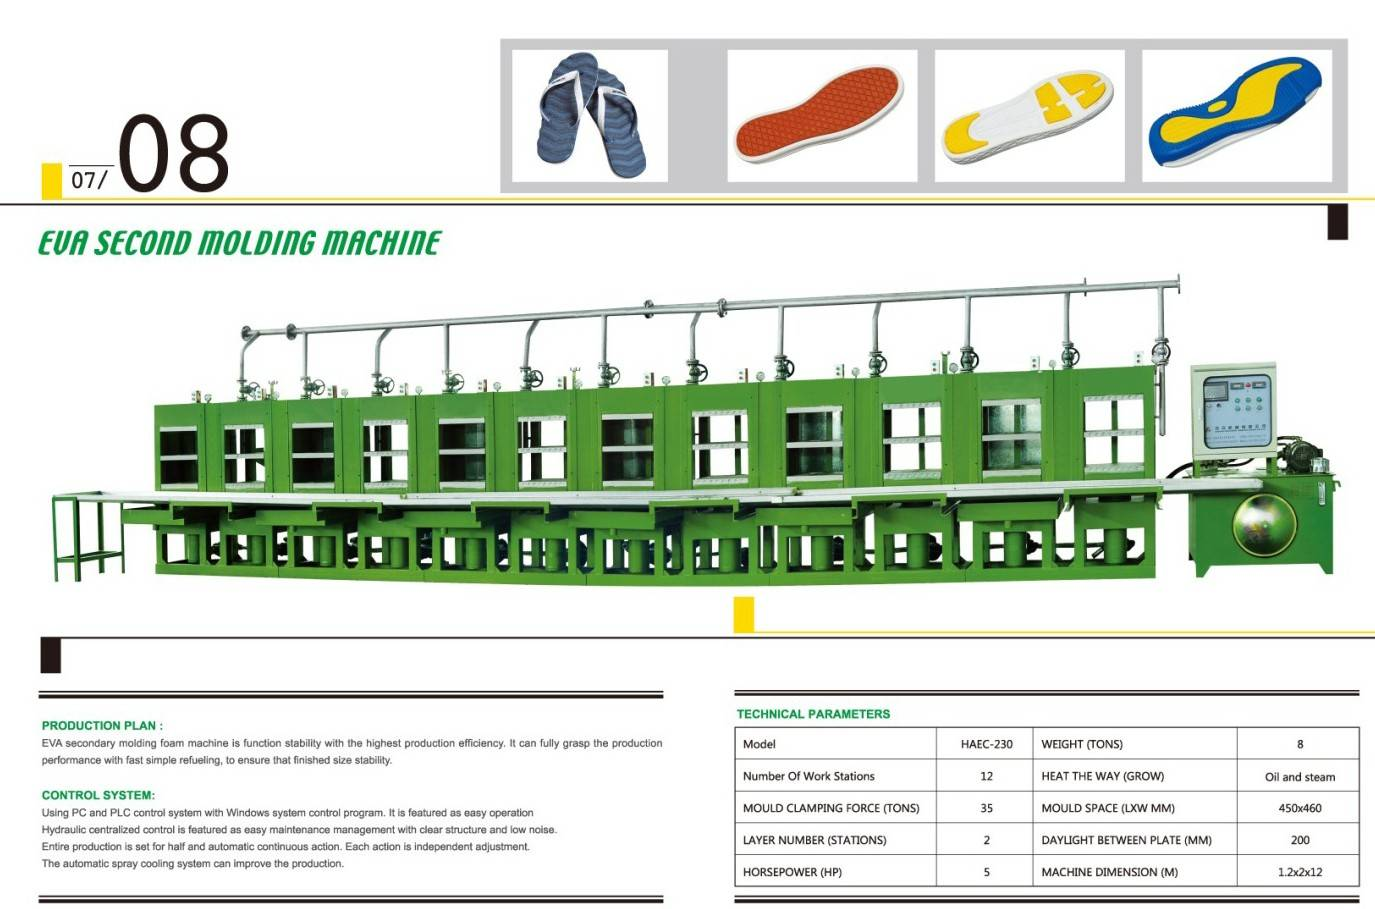 phylone sole molding machine